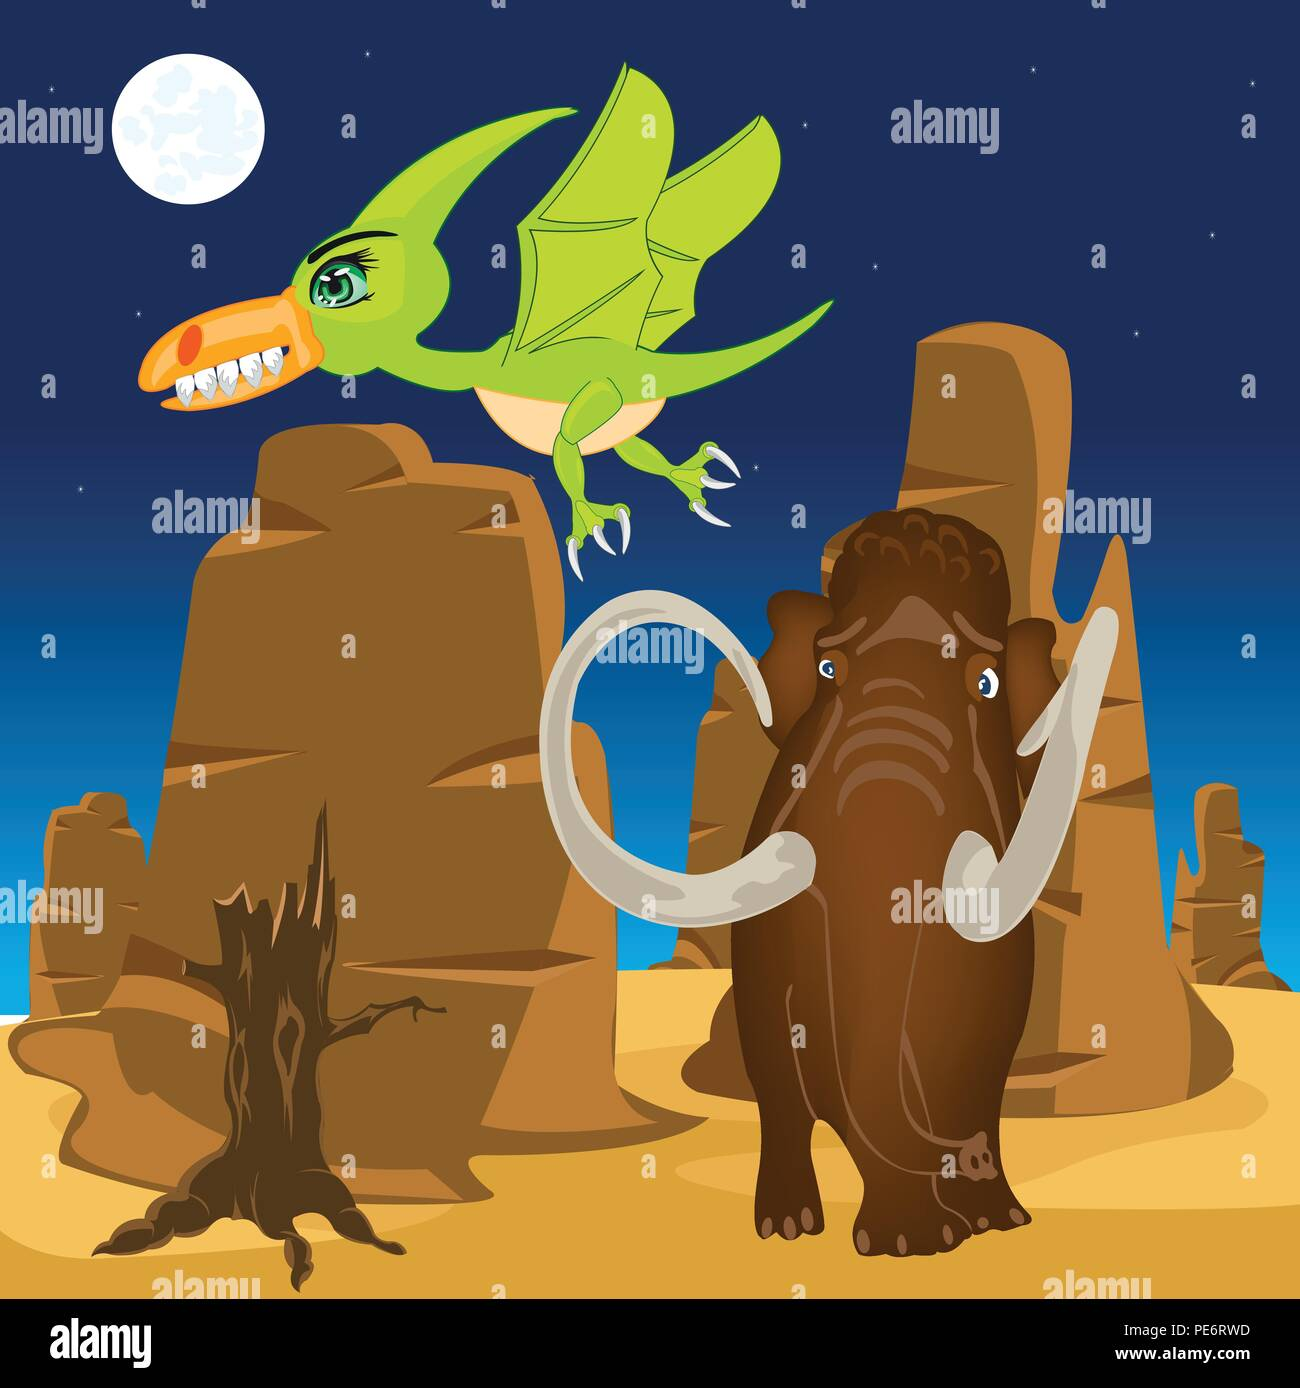 Vector illustration prehistorical animal on nature.Dinosaur and pterodactyl - Stock Image